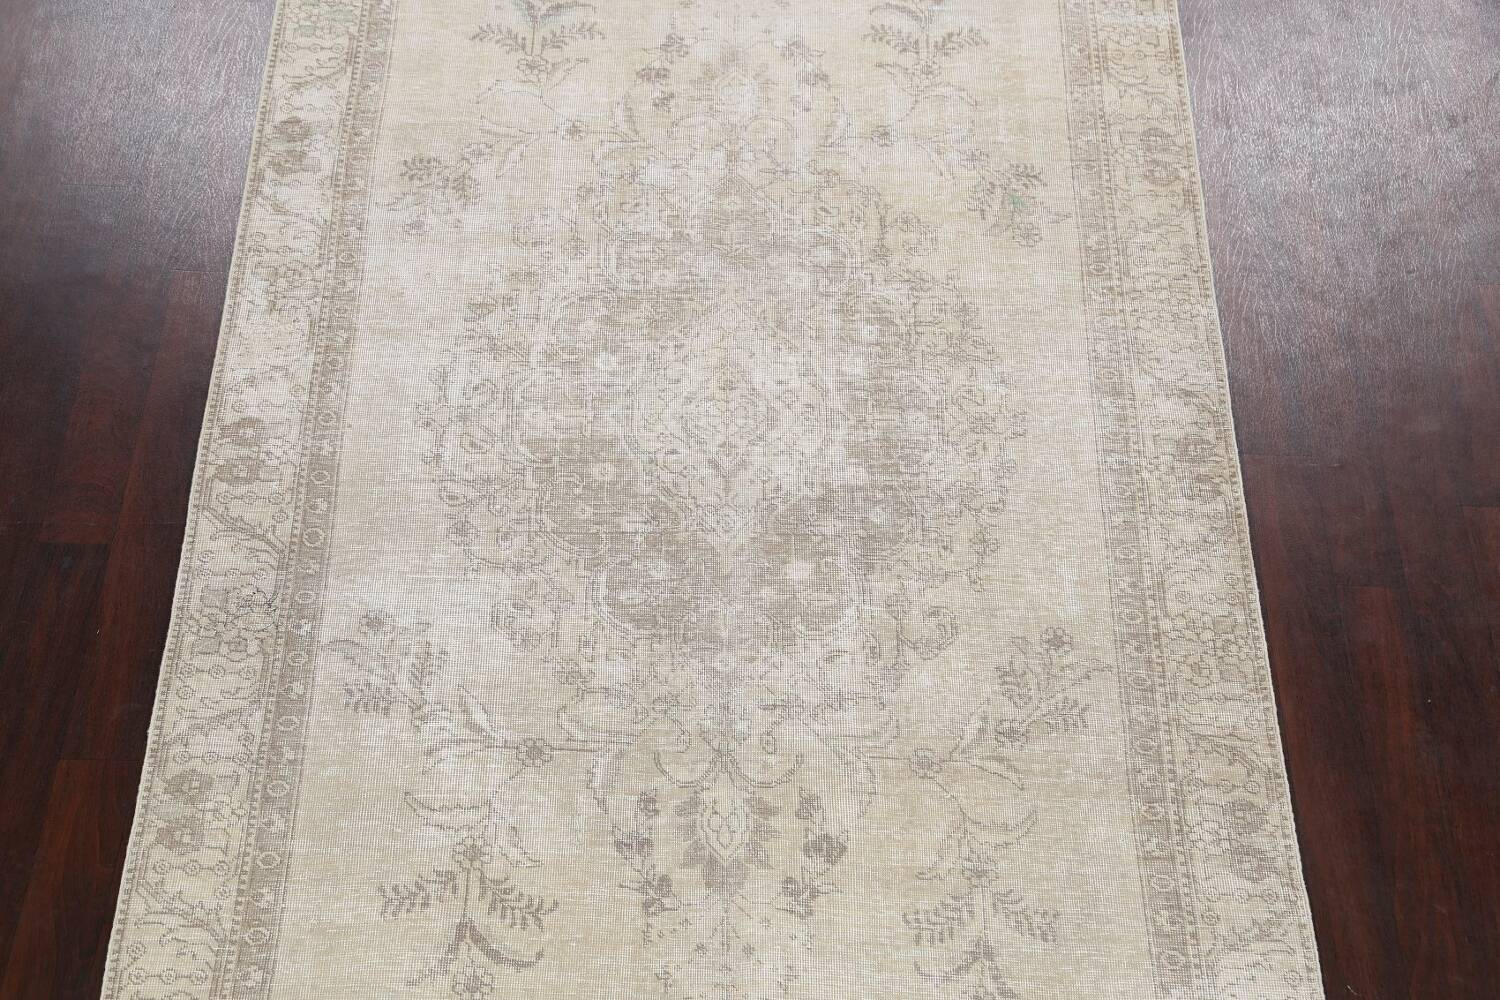 Muted Distressed Floral Tabriz Persian Area Rug 6x9 image 3